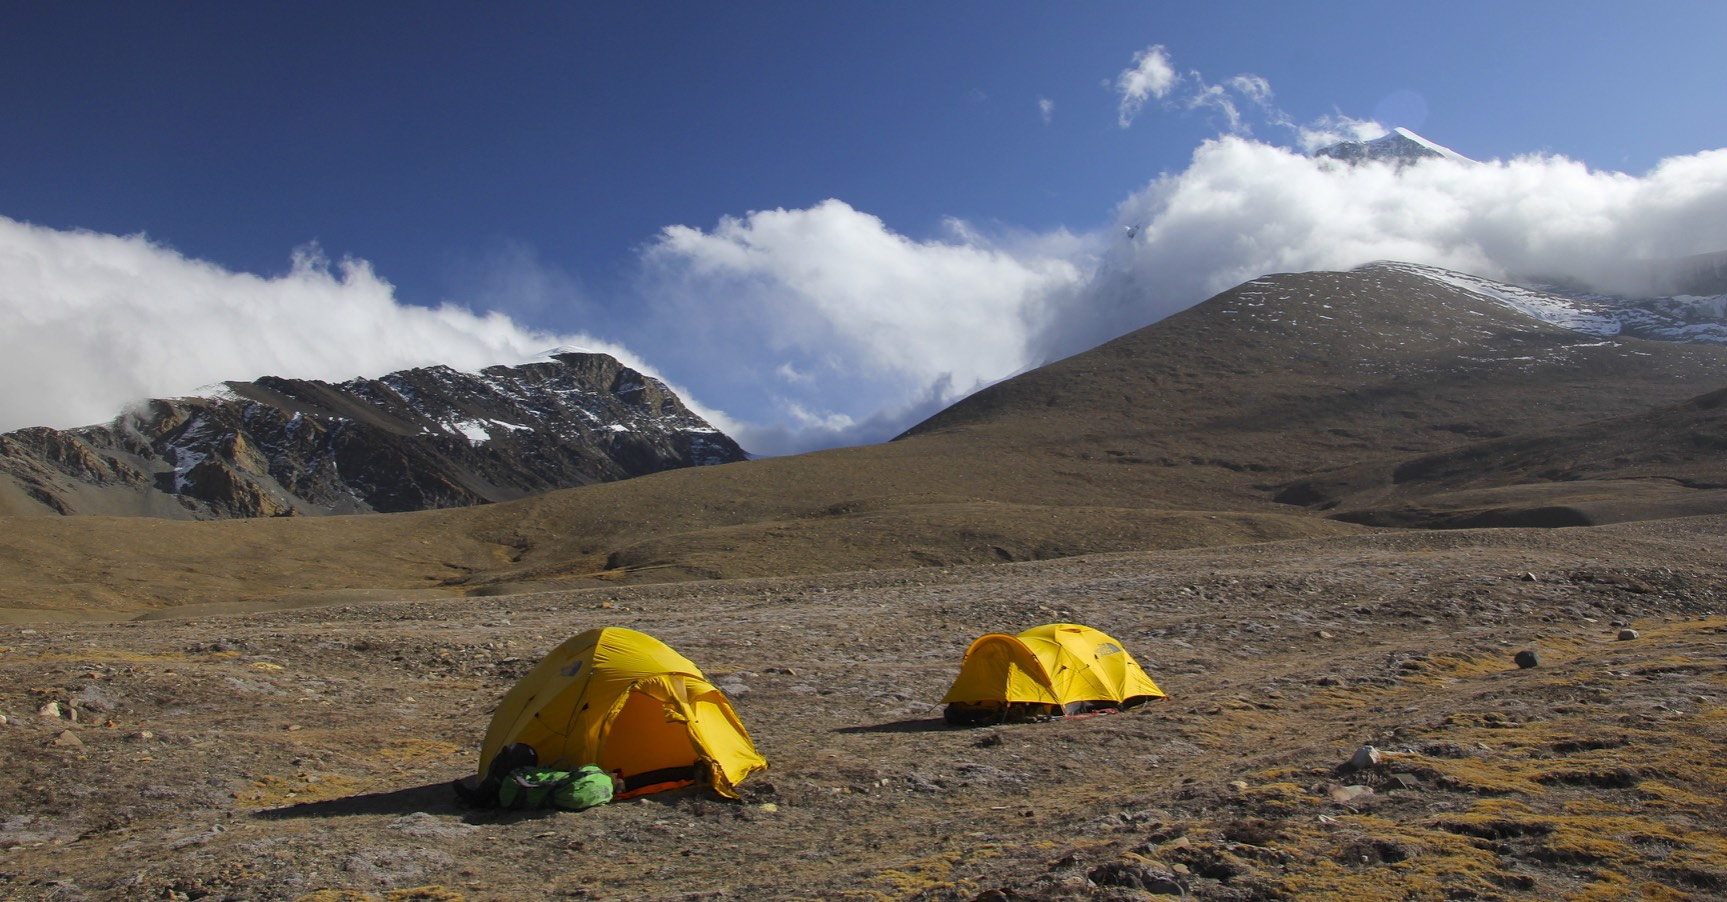 Our camp for the Dhampus Pass in Hidden Valley at 5,000m - a barren, windy and a very cold place!